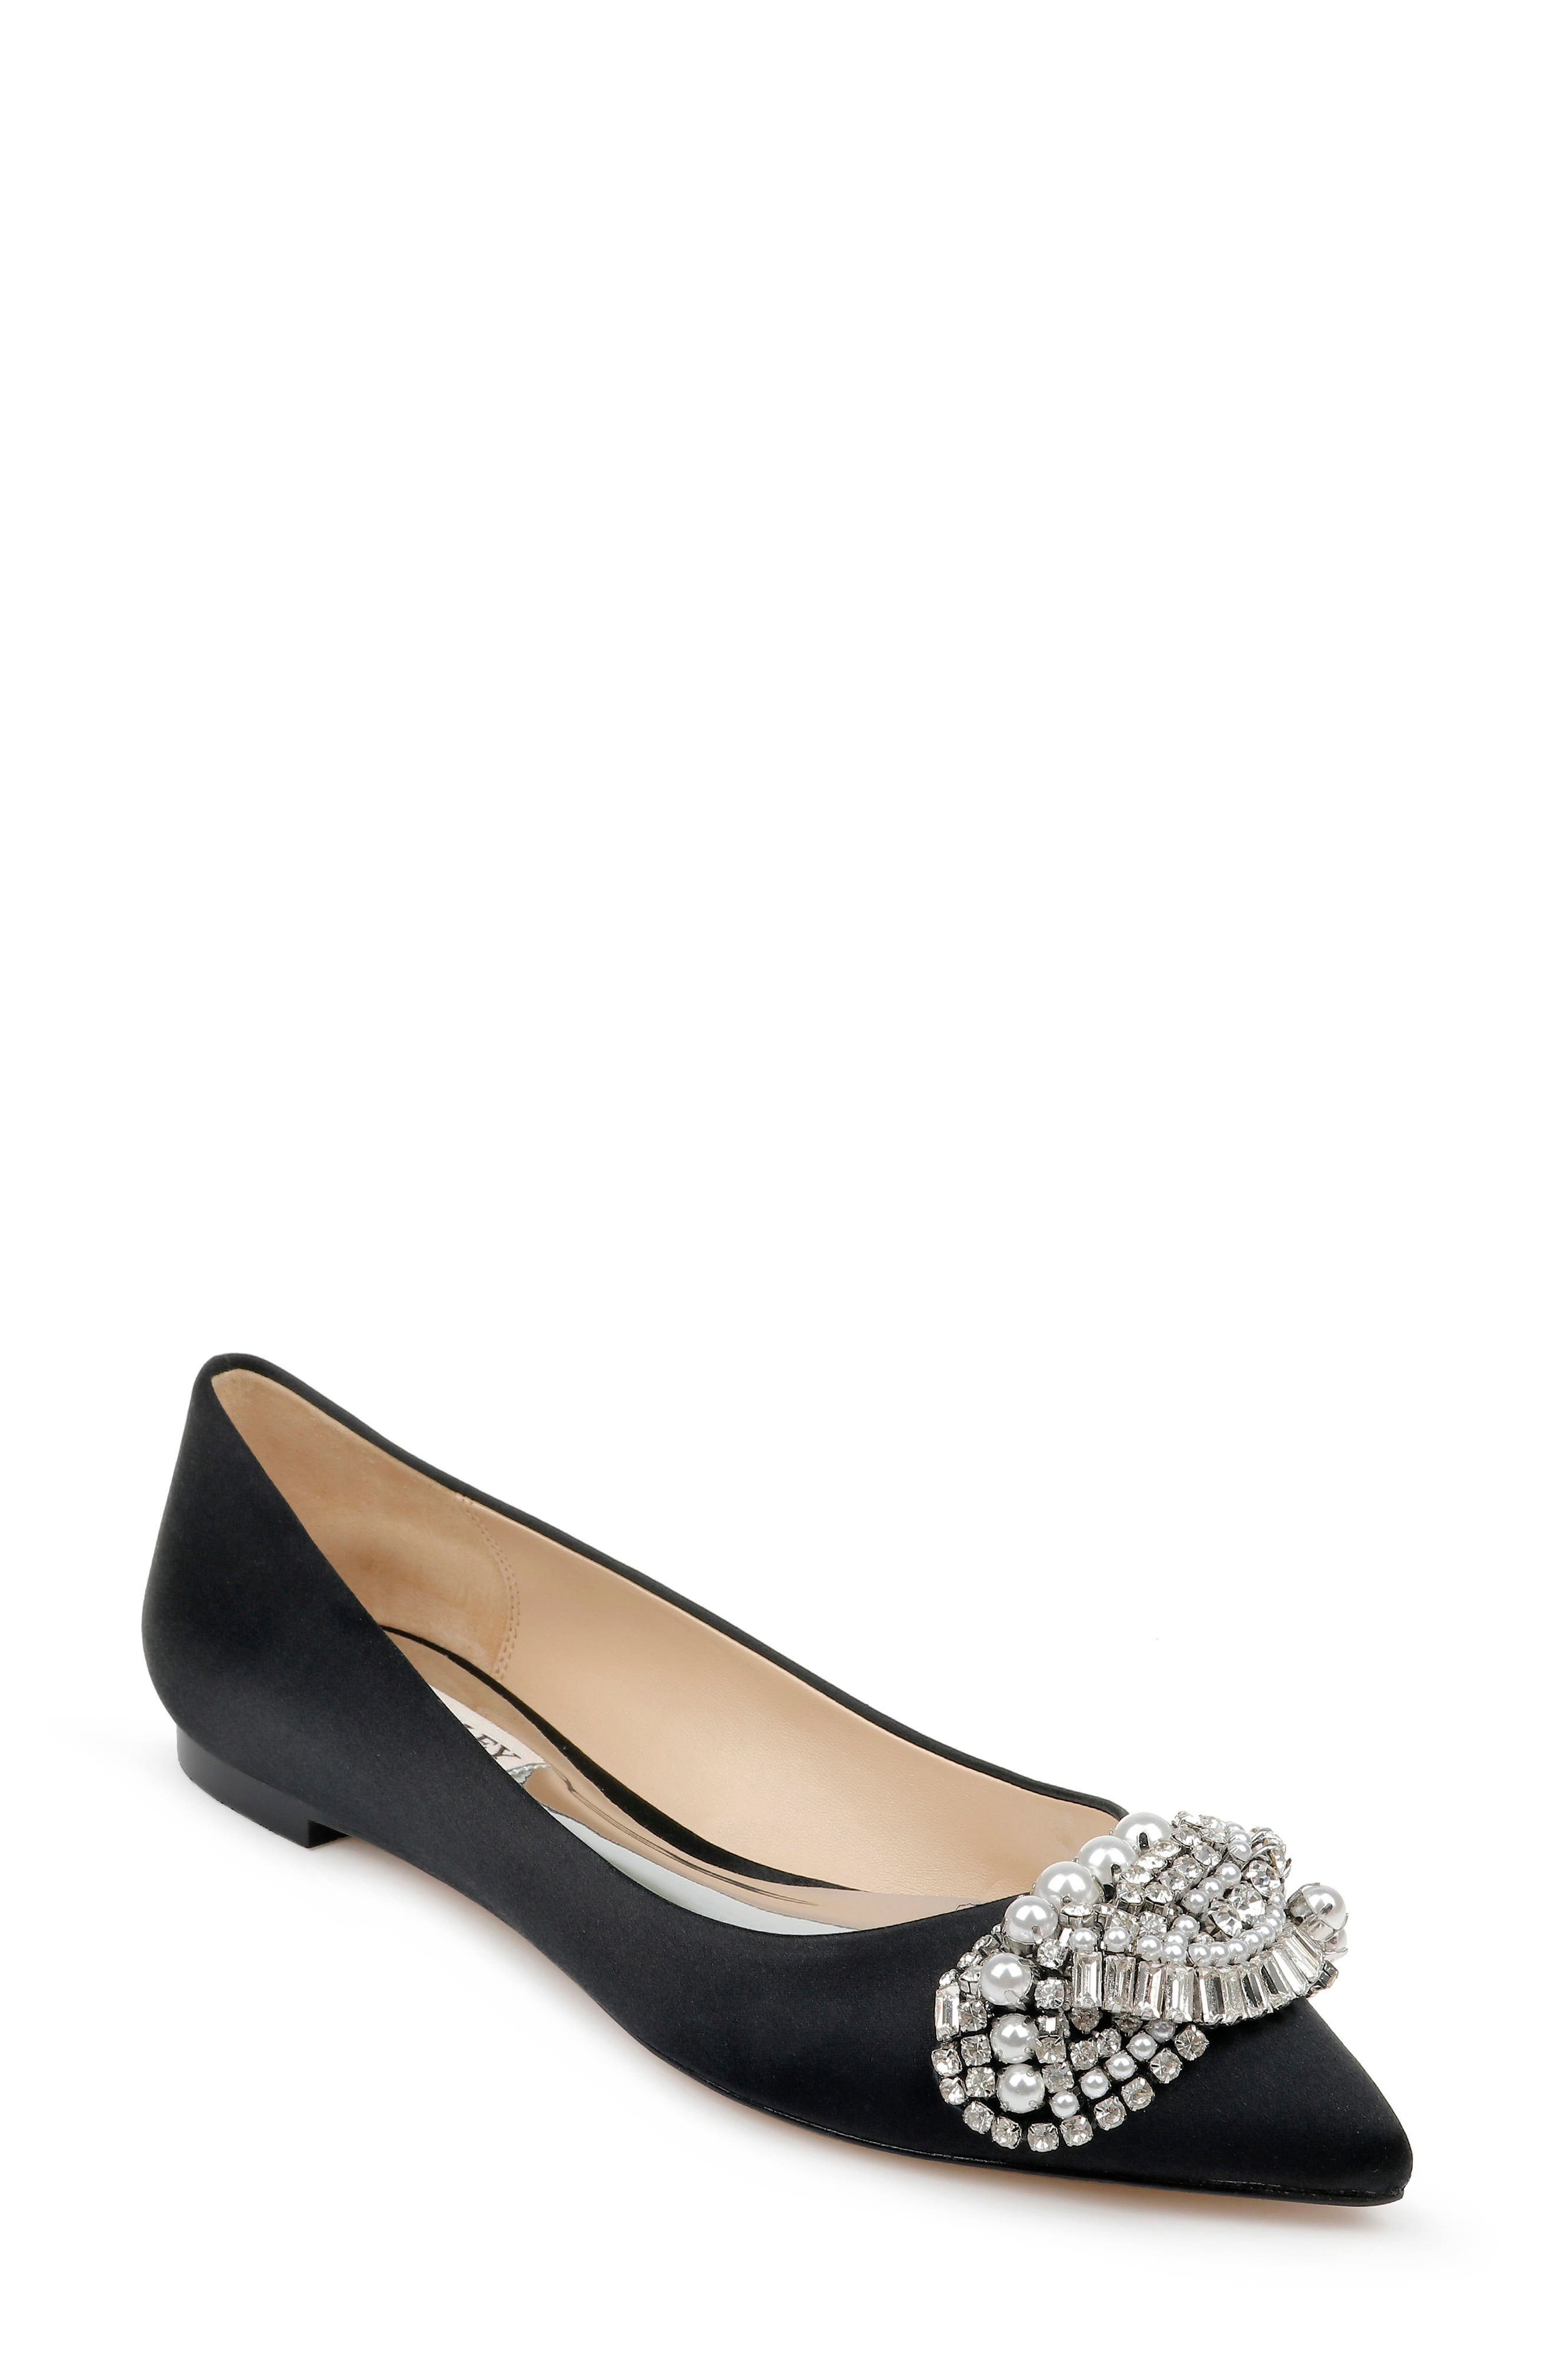 Badgley Mischka Collection Shoes Sale